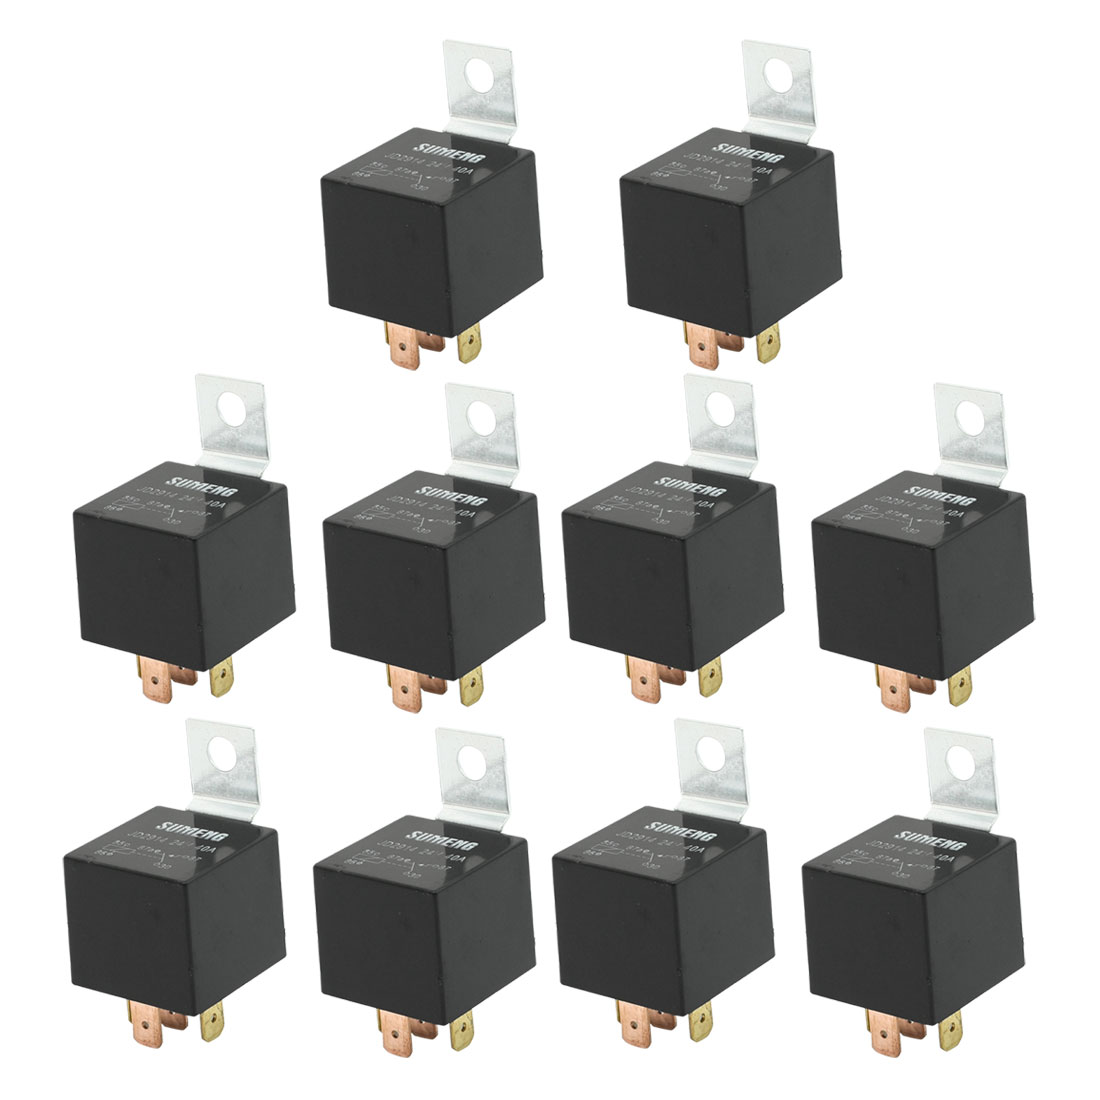 DC 24 Volts 40A 1NO+1NC SPDT 5 Pin JD2914 Type Auto Car Relay 10 Pcs